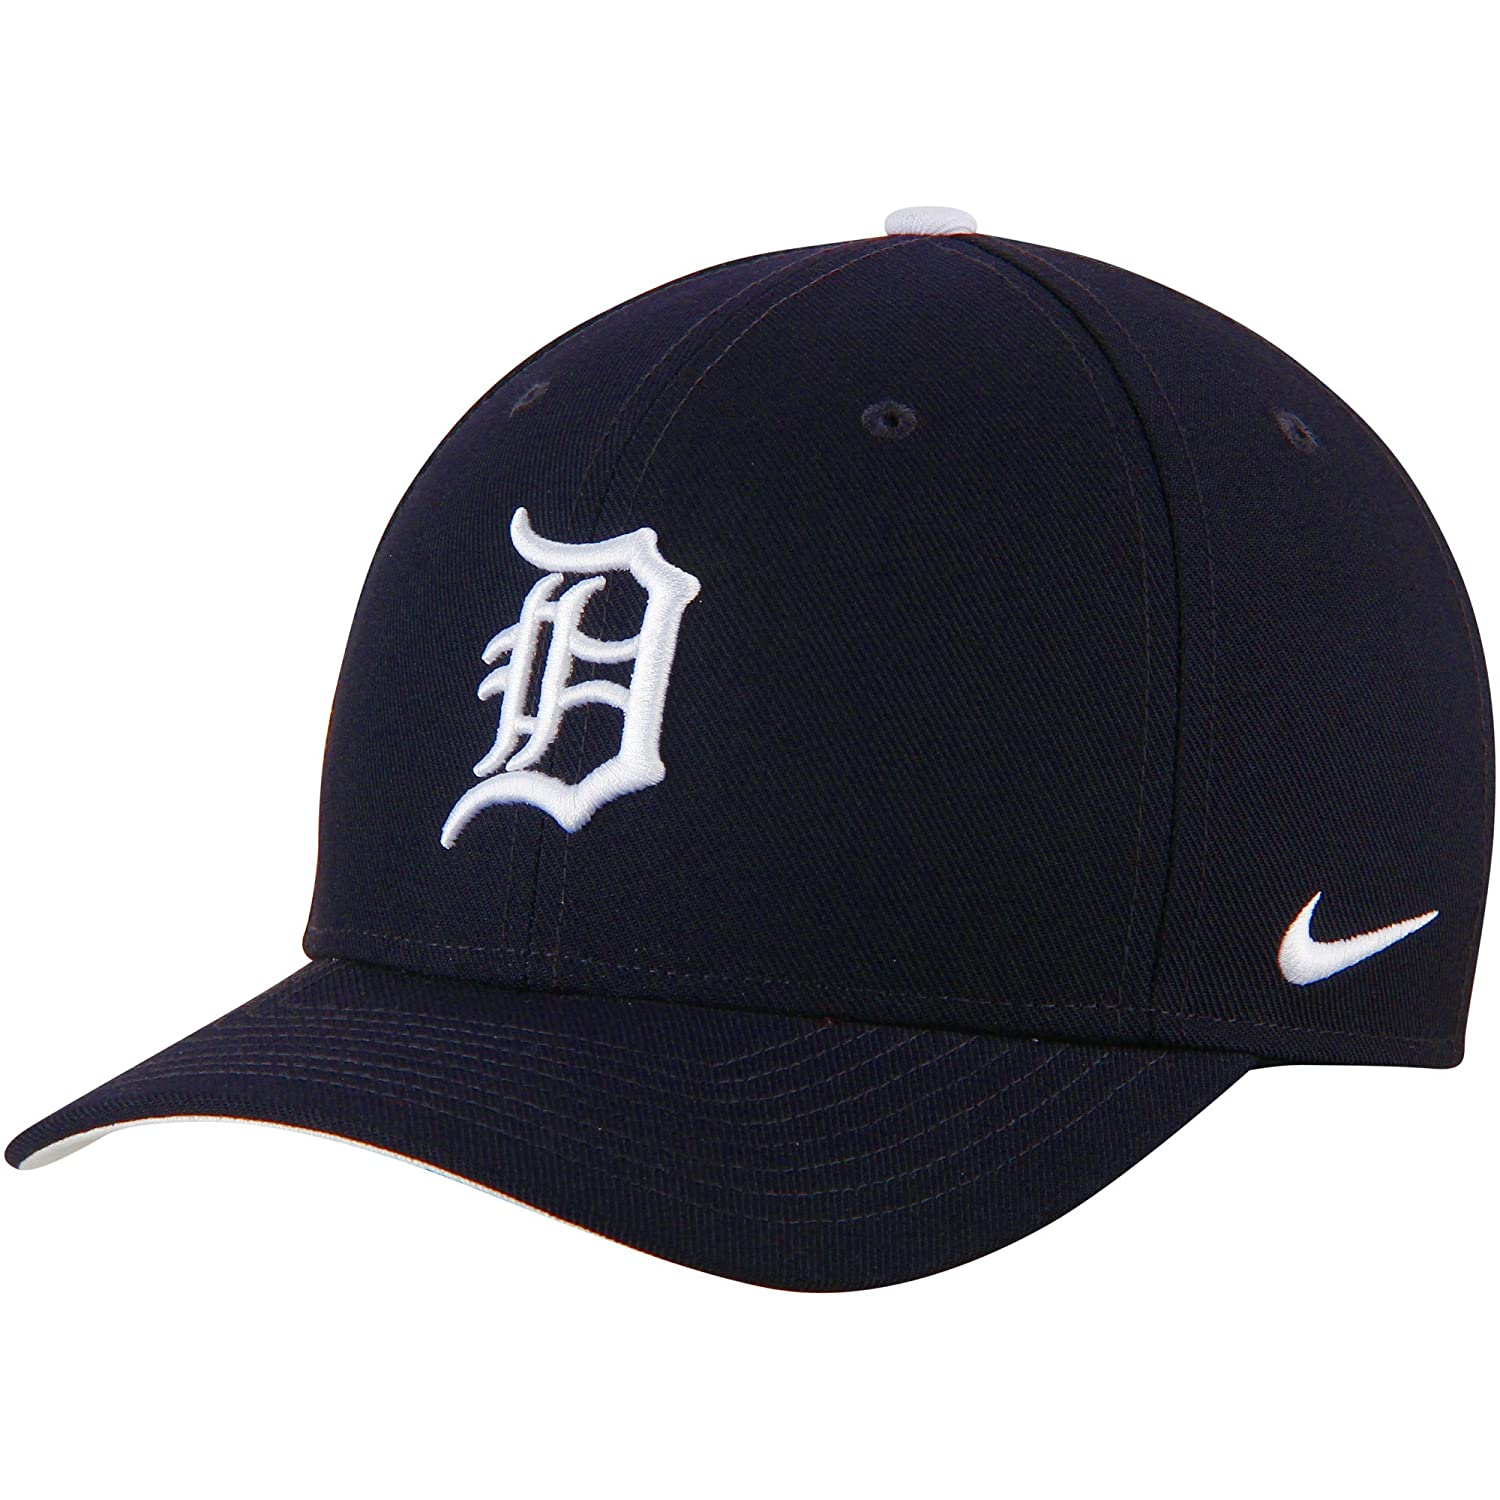 lowest price b8db7 d8e41 Amazon.com   Nike Detroit Tigers Wool Classic Adjustable Performance Hat  Navy   Sports   Outdoors